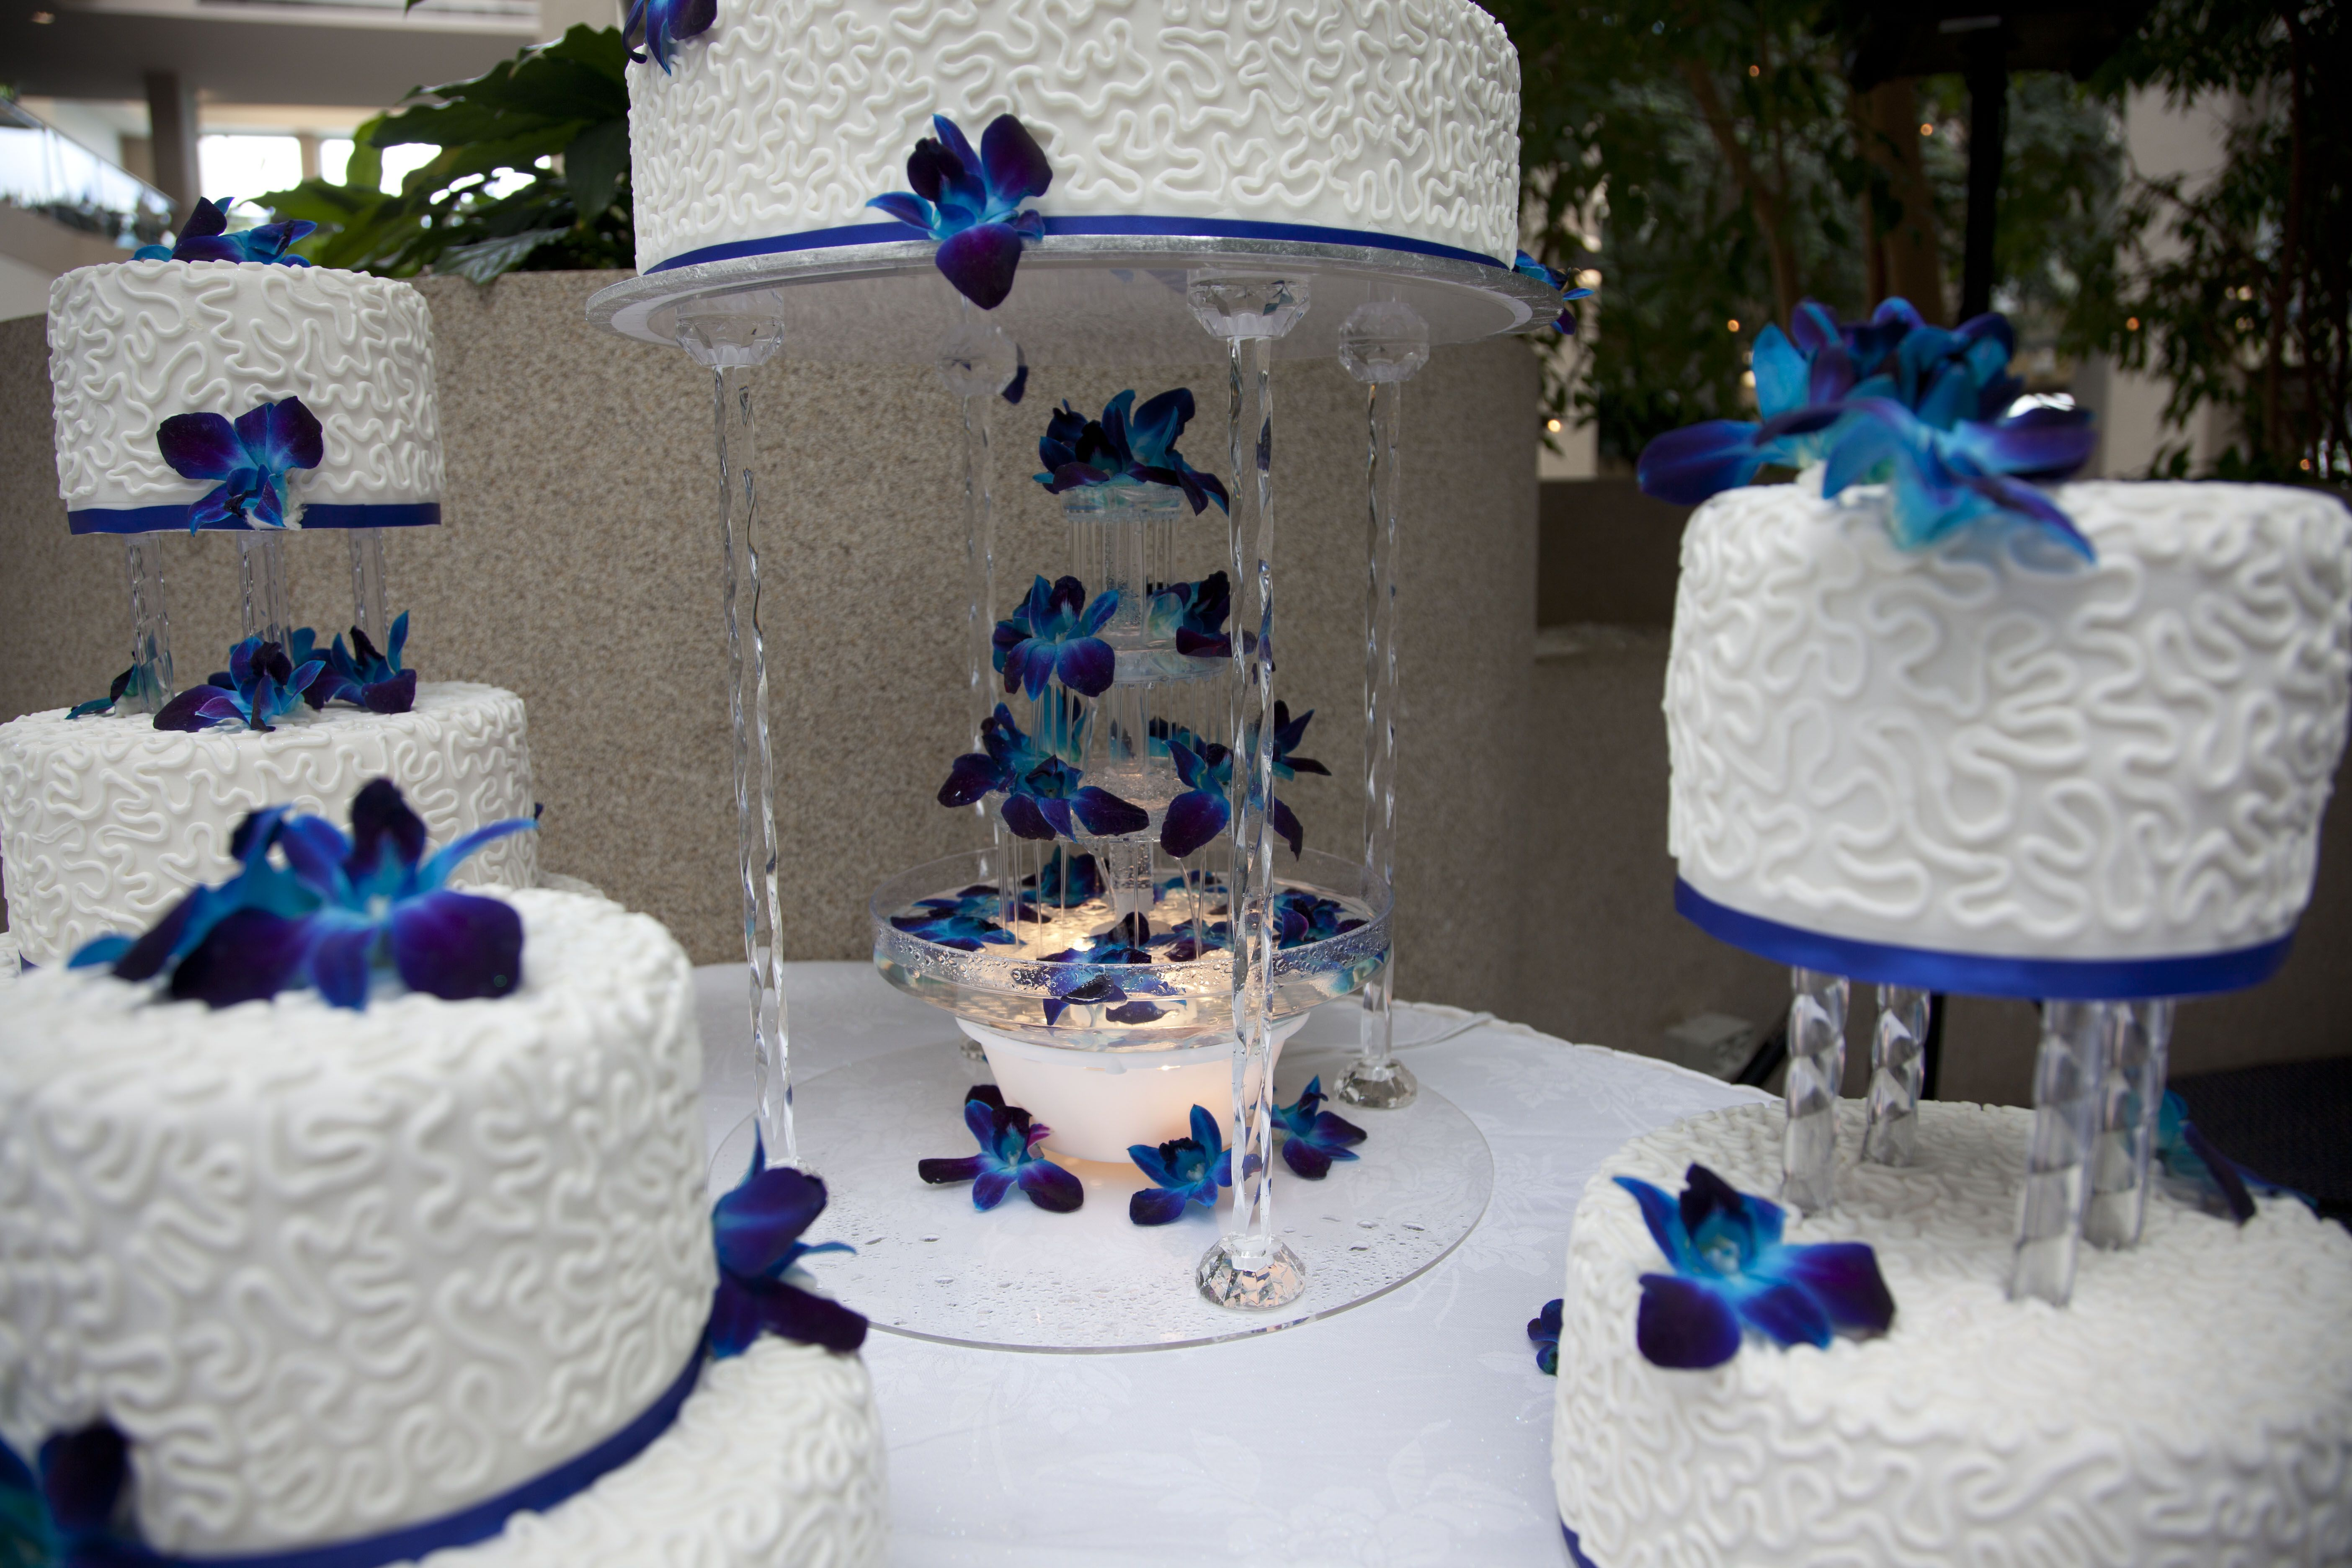 Water Fountain Under The Royal Blue Wedding Cake Decorated With